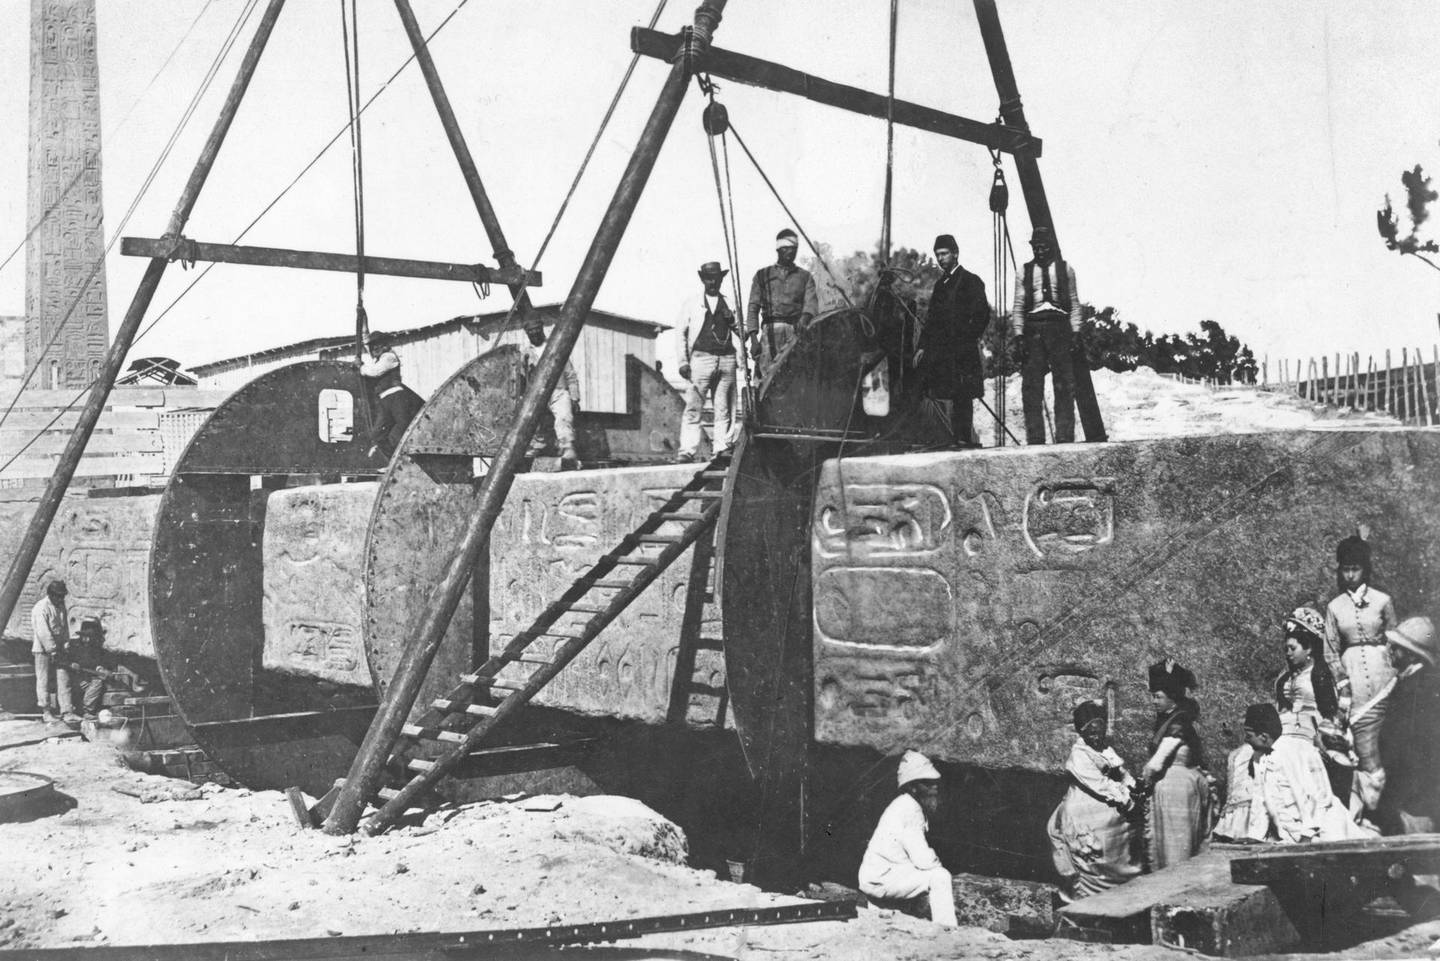 circa 1877:  Cleopatra's Needle being encased for its transportation to the embankment, London.  (Photo by General Photographic Agency/Getty Images)